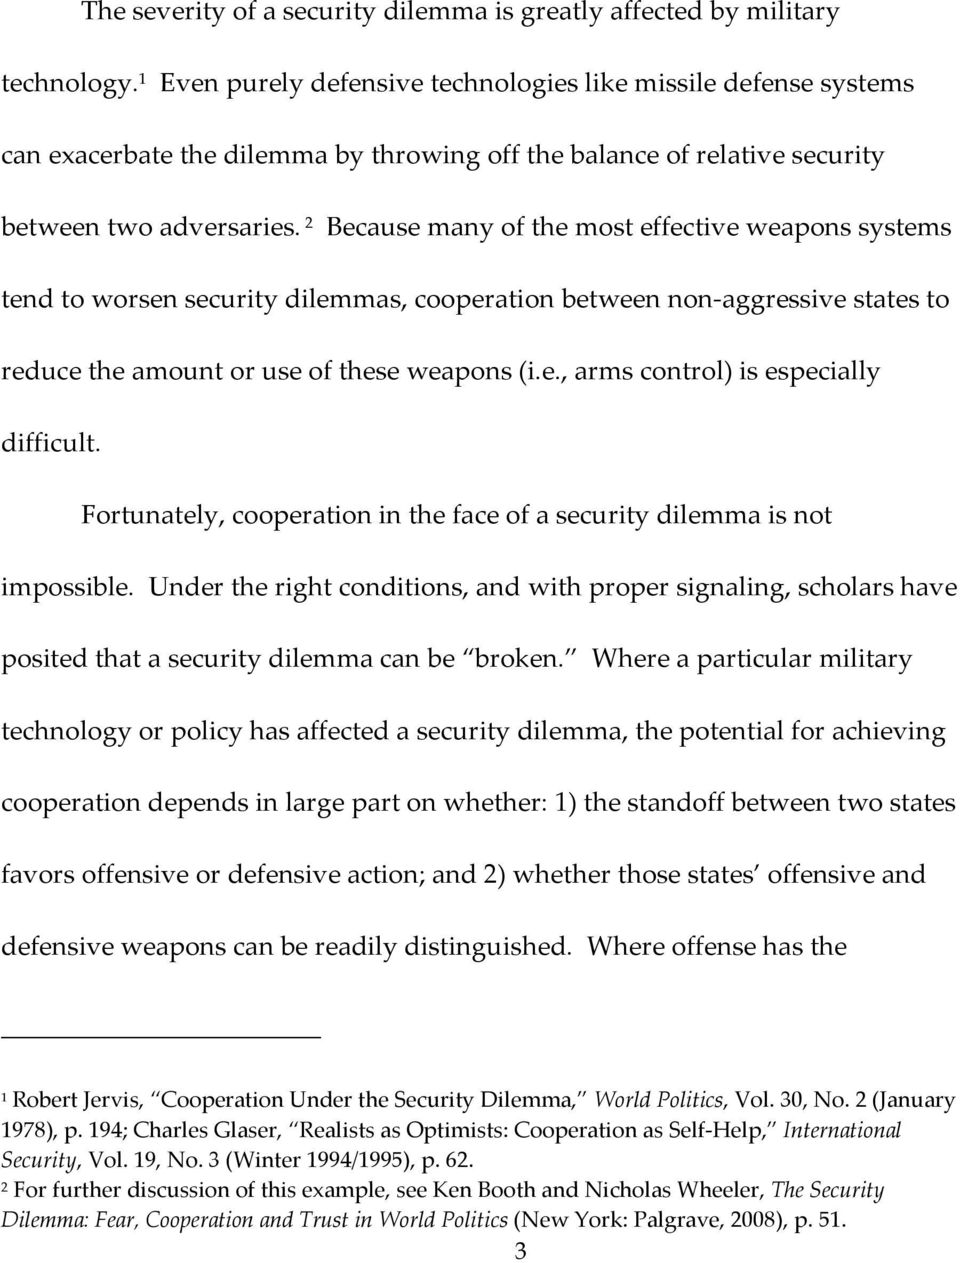 2 Because many of the most effective weapons systems tend to worsen security dilemmas, cooperation between non-aggressive states to reduce the amount or use of these weapons (i.e., arms control) is especially difficult.